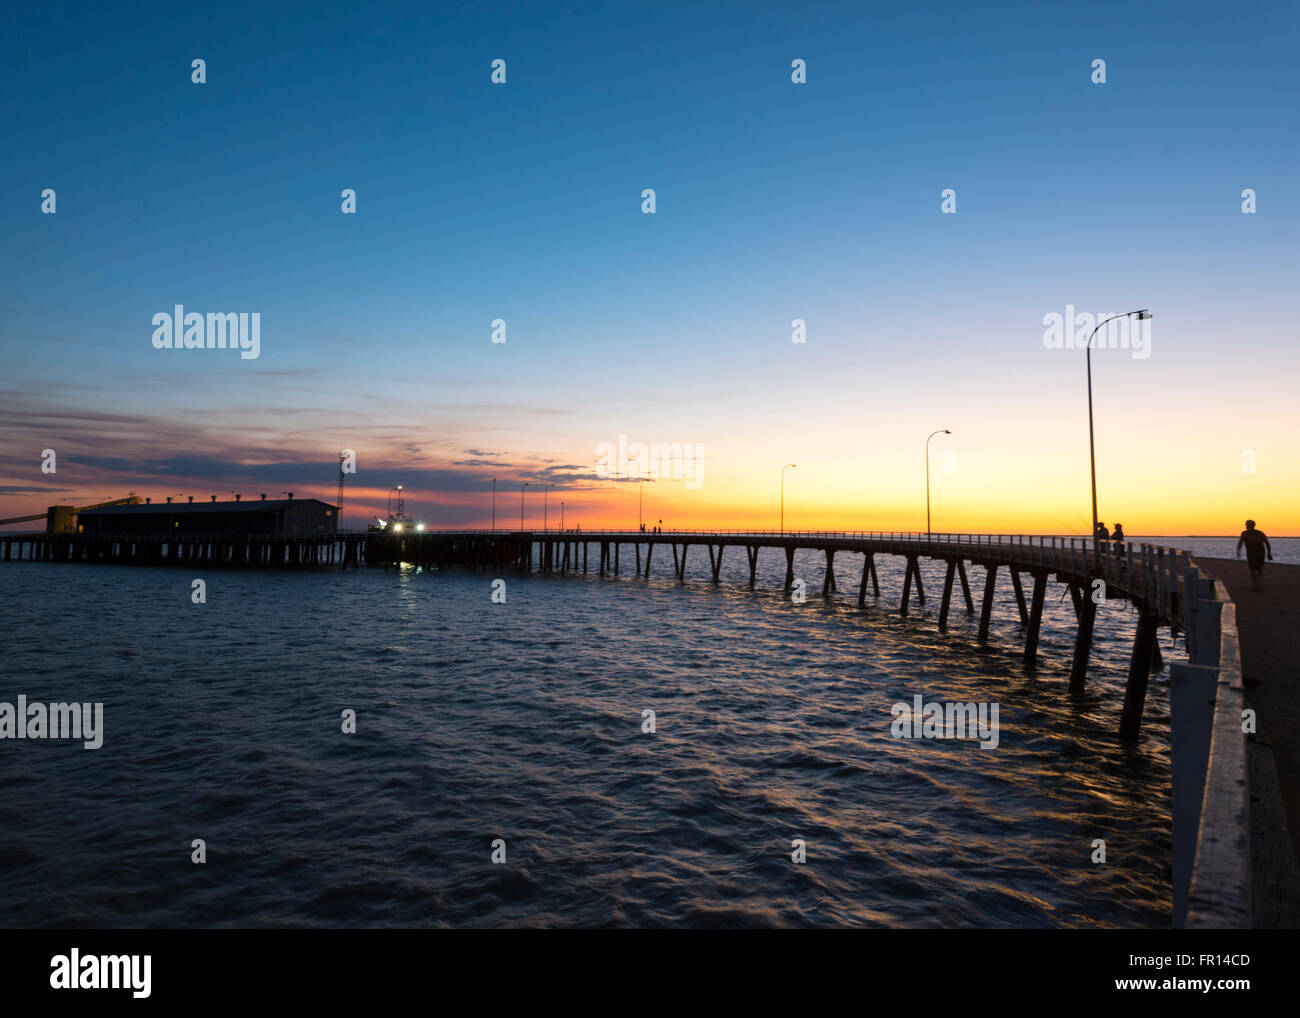 Derby Jetty at Sunset, Western Australia - Stock Image